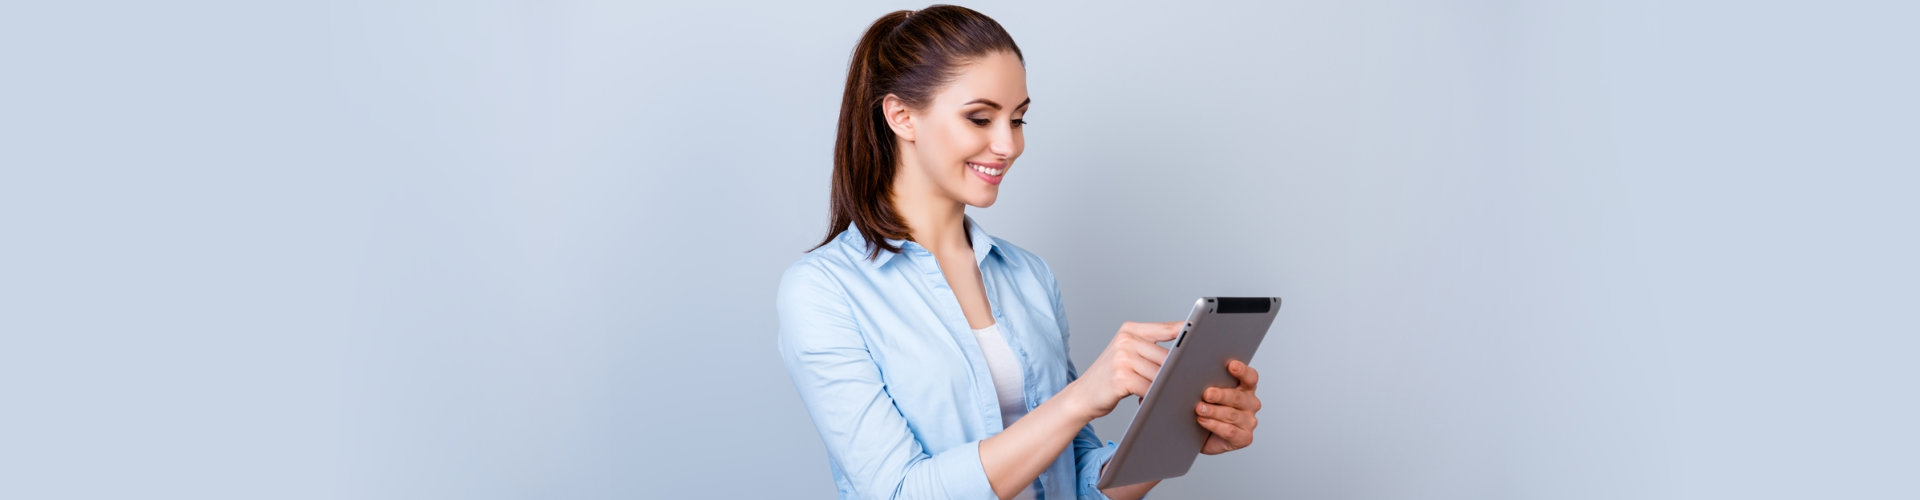 a woman with a tablet